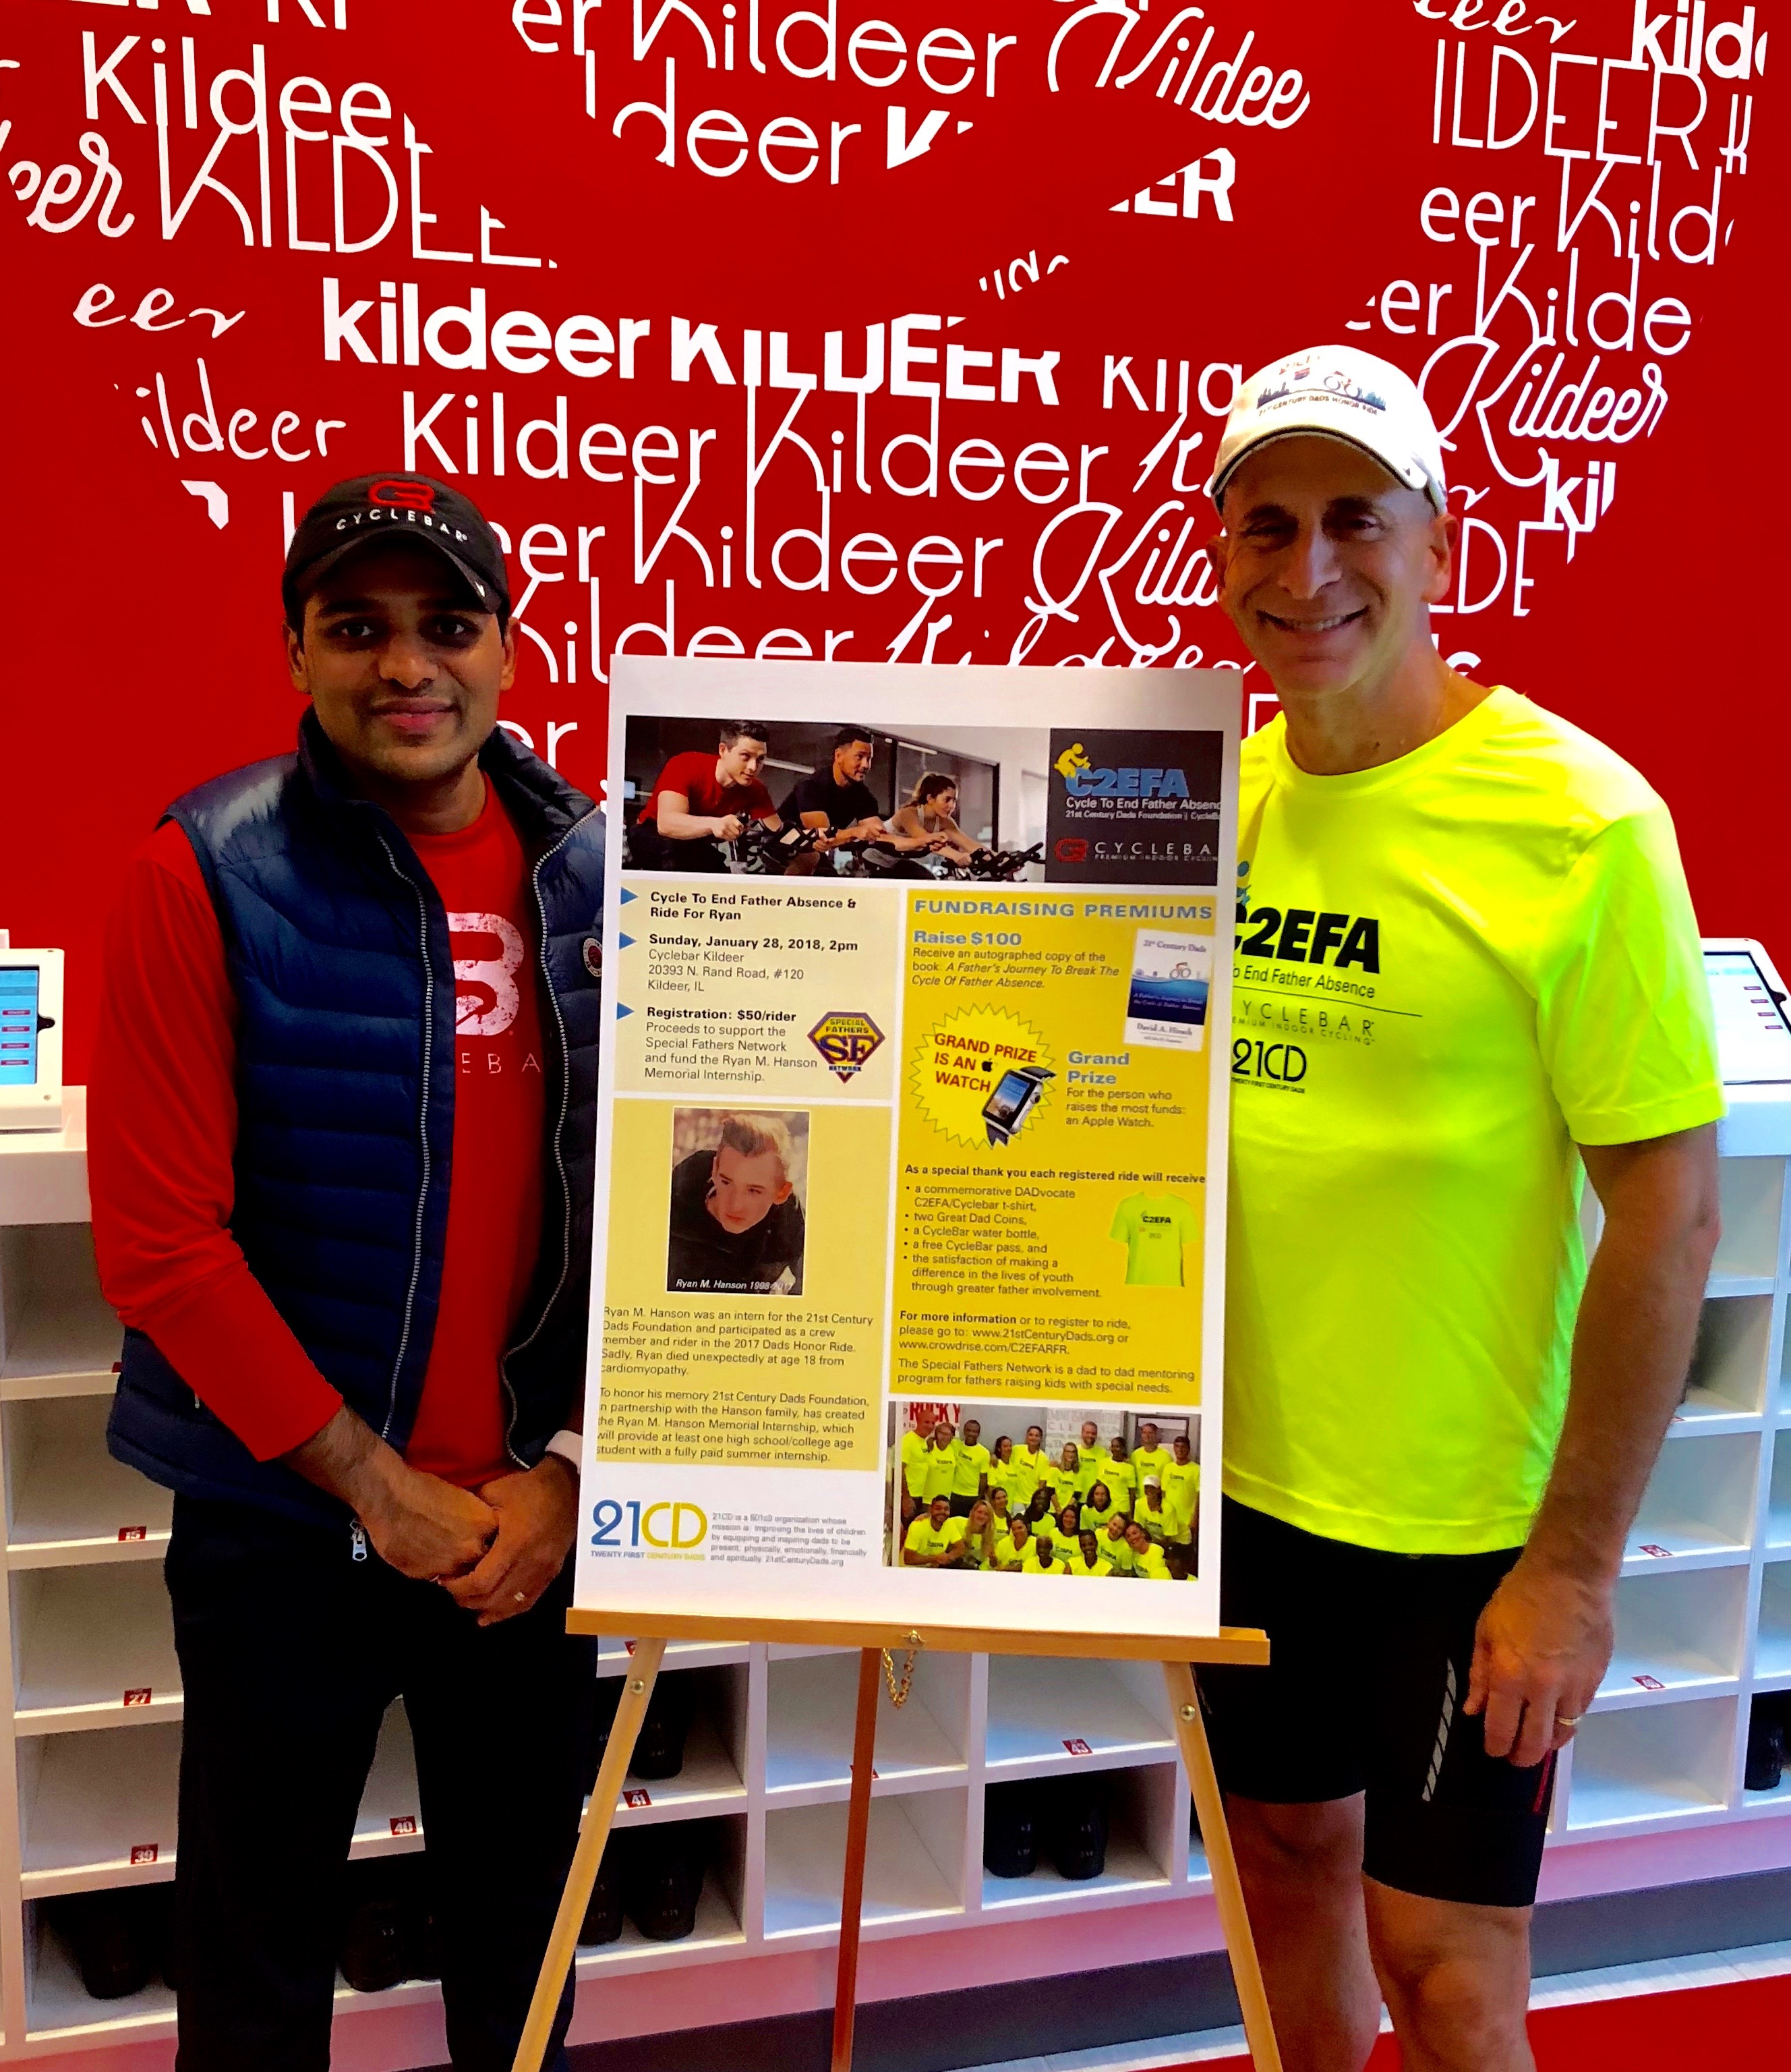 Cycle To End Father Absence Fargo - April 21, 2018 - 1pm Photo